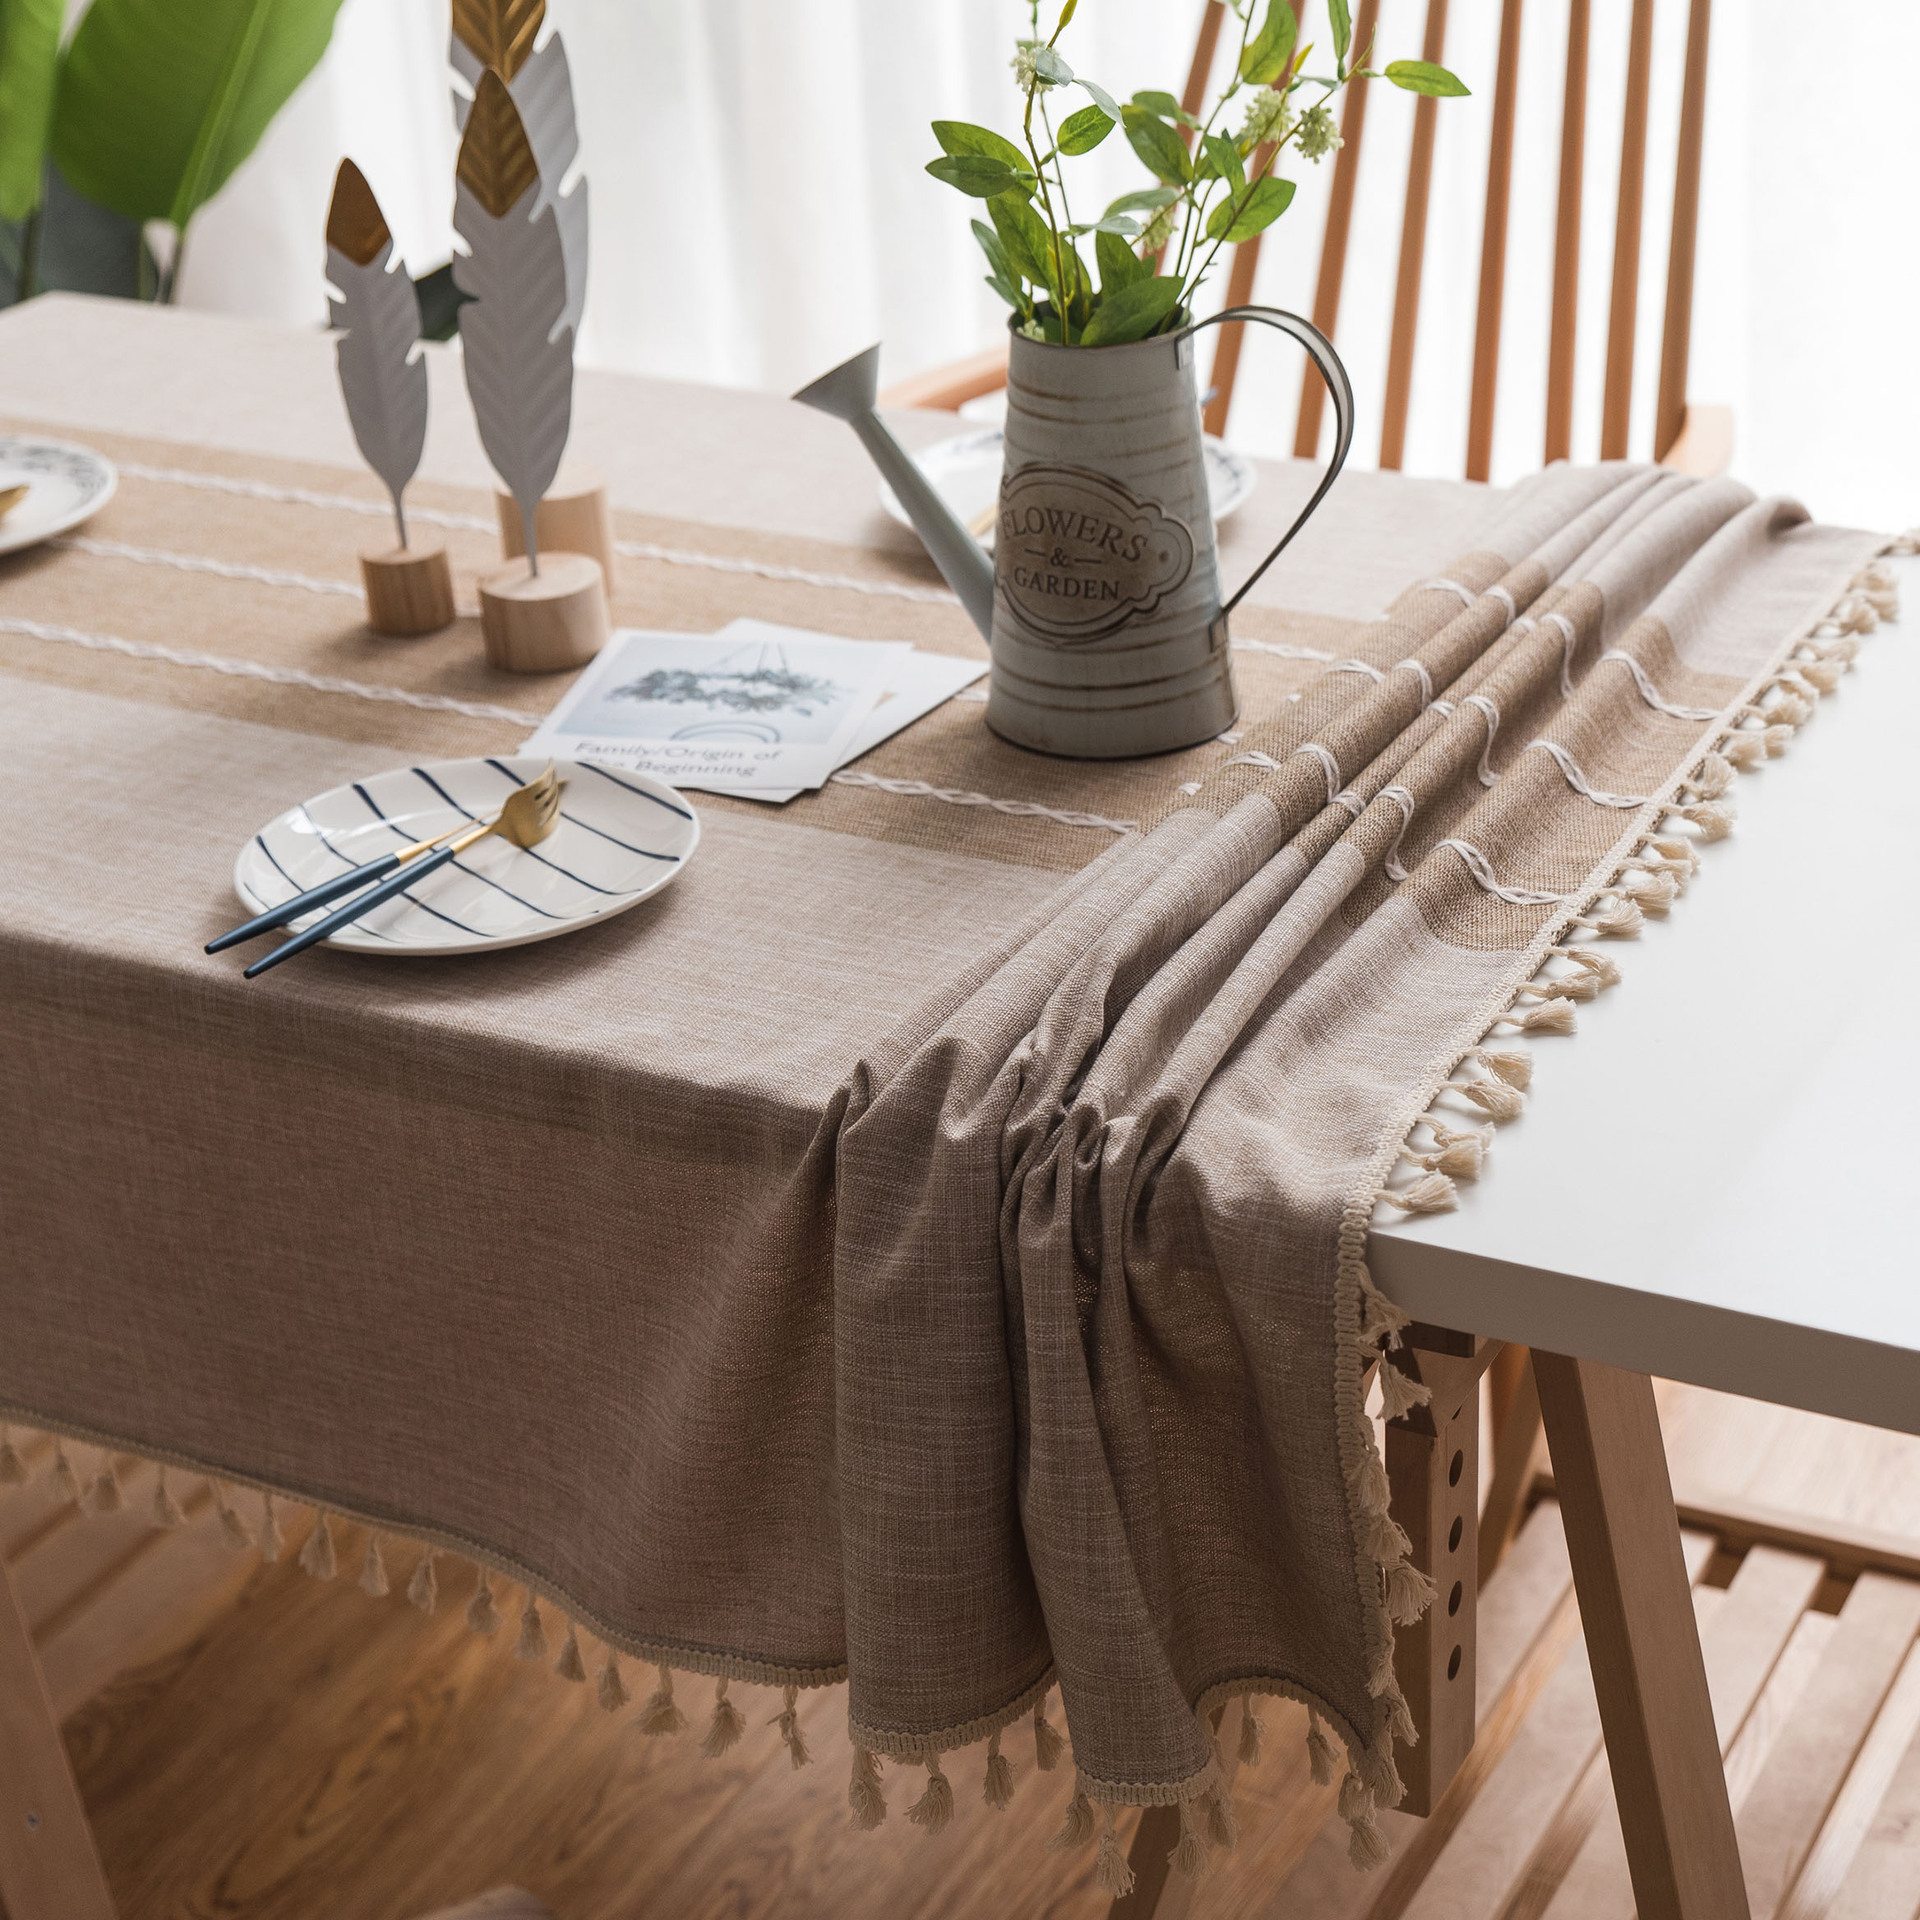 Us 13 12 25 Off Runner Burlap Natural Jute Imitated Linen Rustic Decor Wedding Table Decoration Accessories Khaki Gray Party Tablecloth In